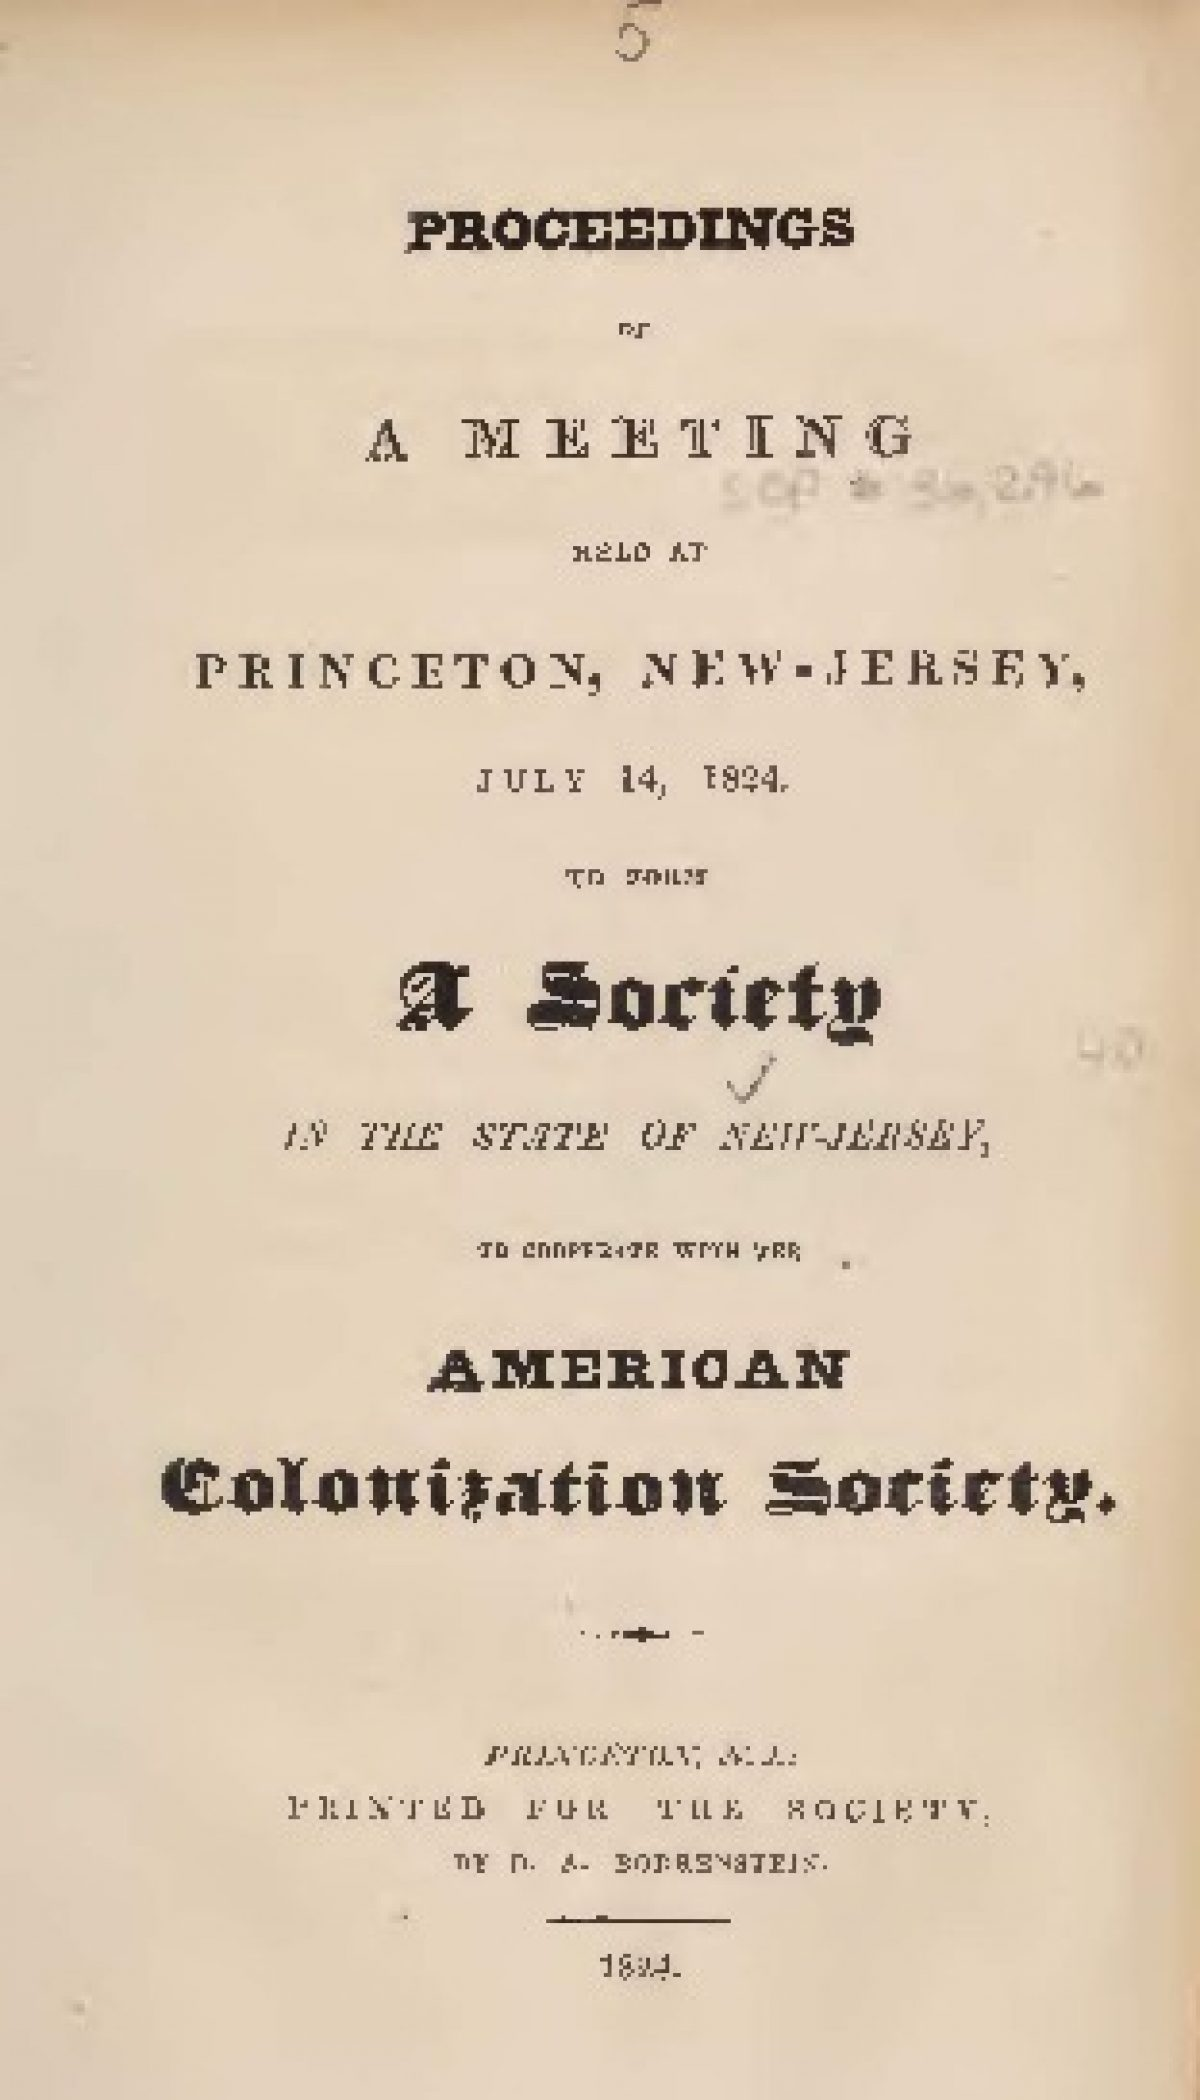 Proceedings Of A Meeting Held At Princeton